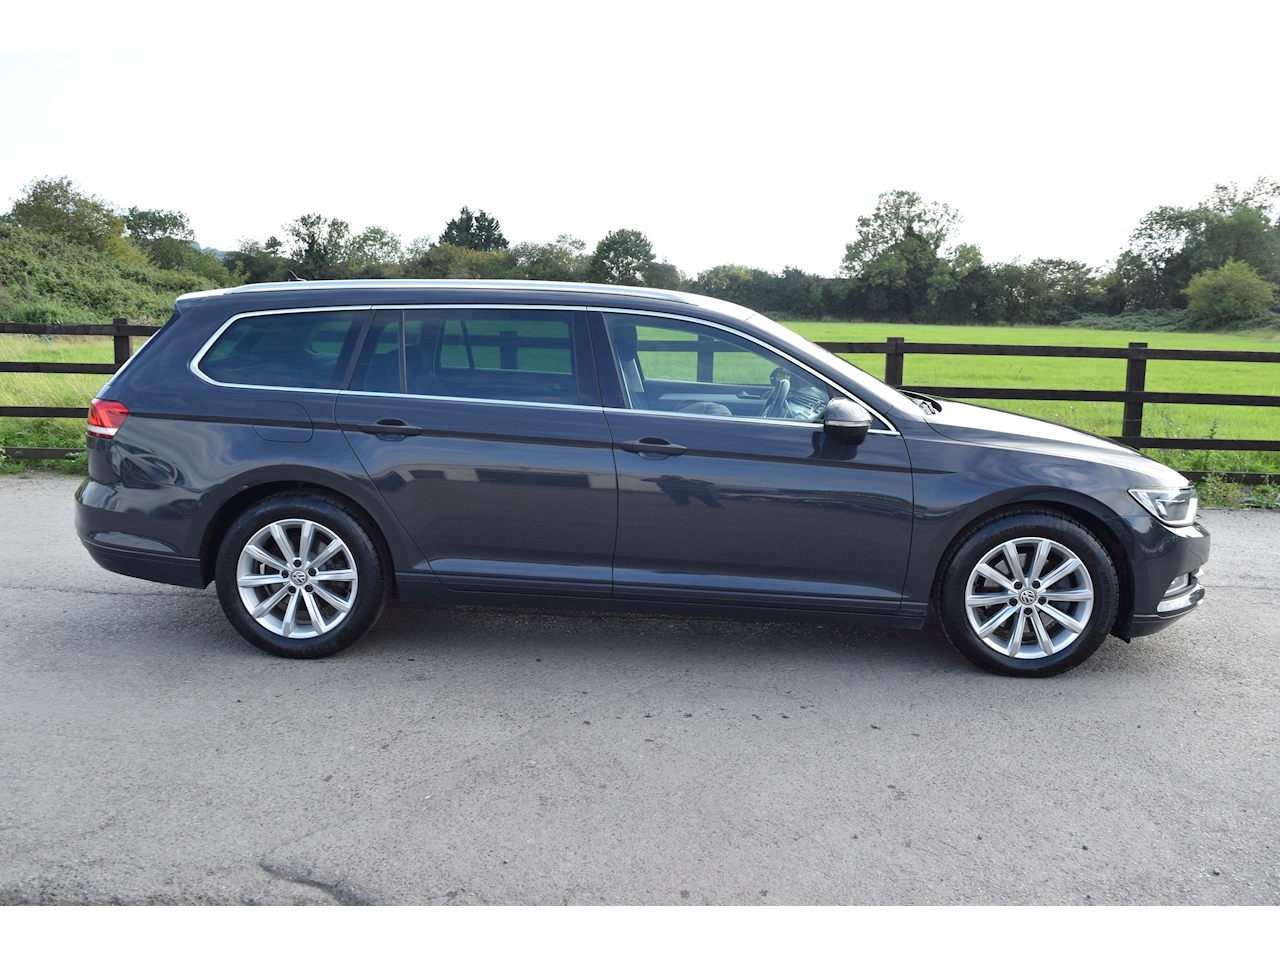 Volkswagen Passat SE Business Estate 2.0 DSG Diesel